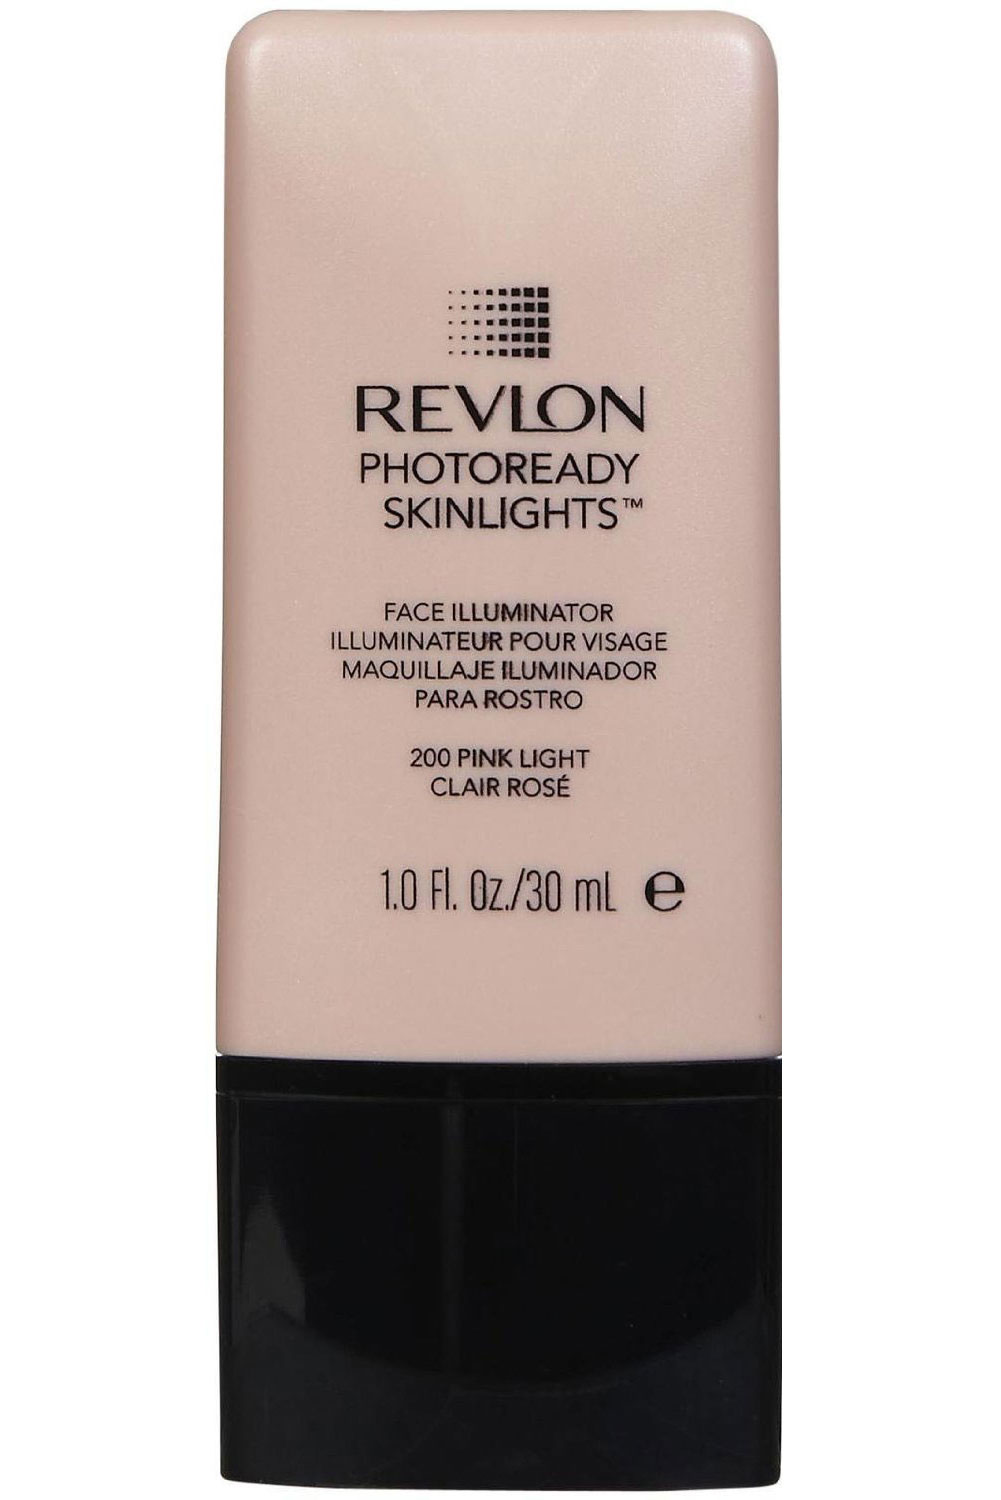 REVLON PhotoReady Skinlights Face Illuminator Pink Light 200